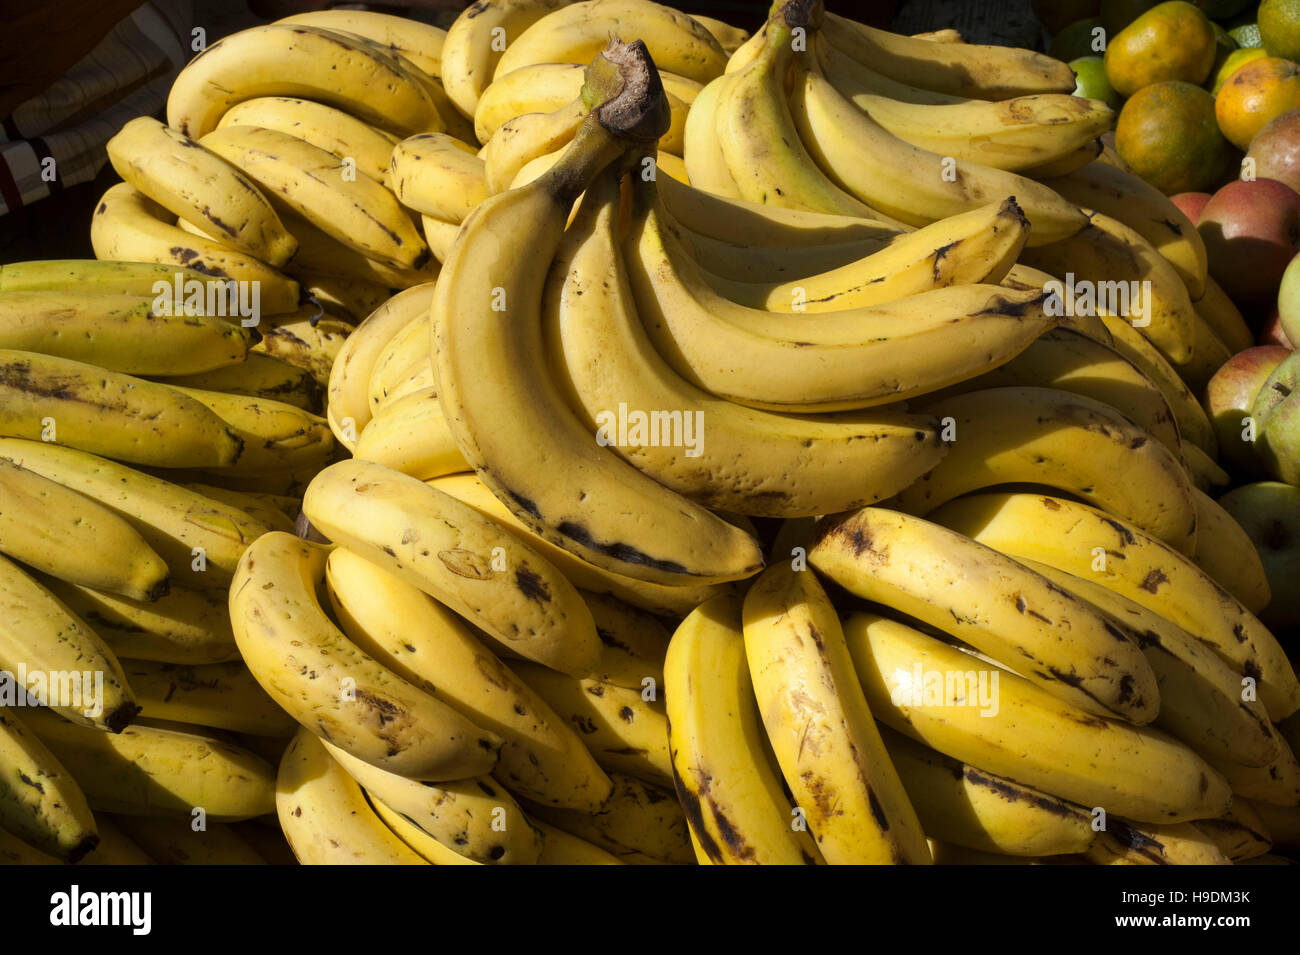 A banana is a fruit or berry. Little known facts about bananas 38